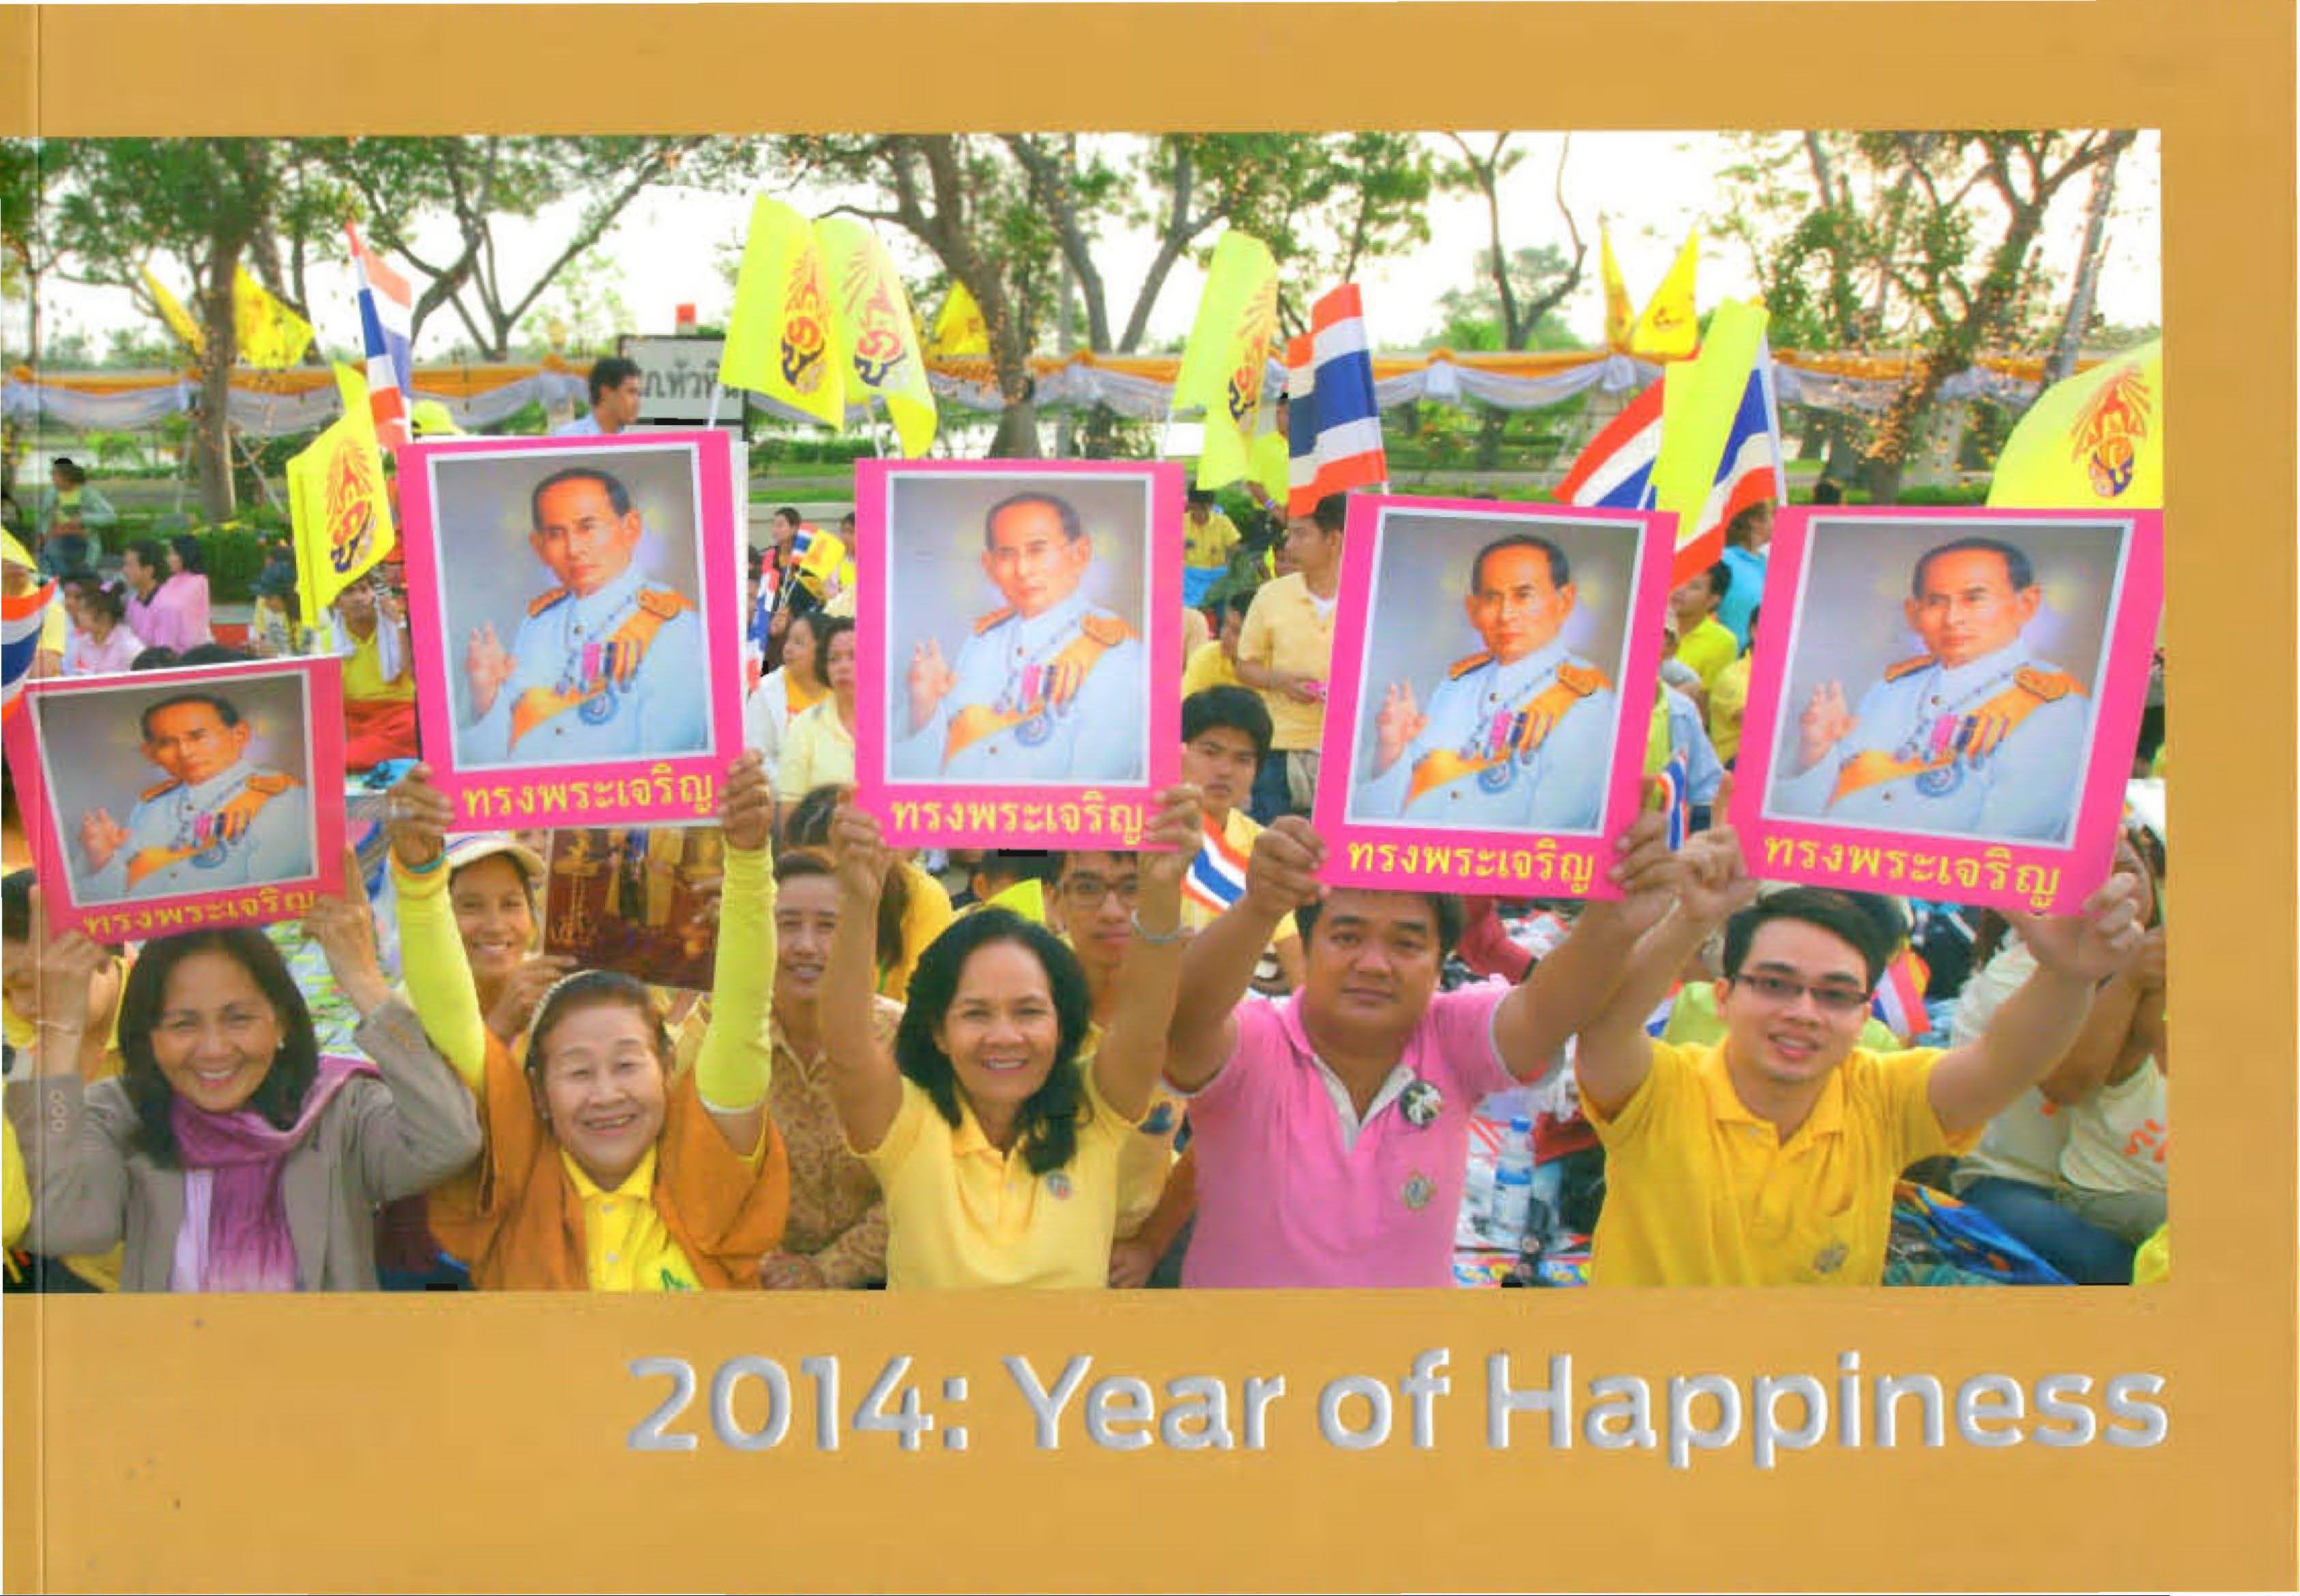 2014 : Year of Happiness